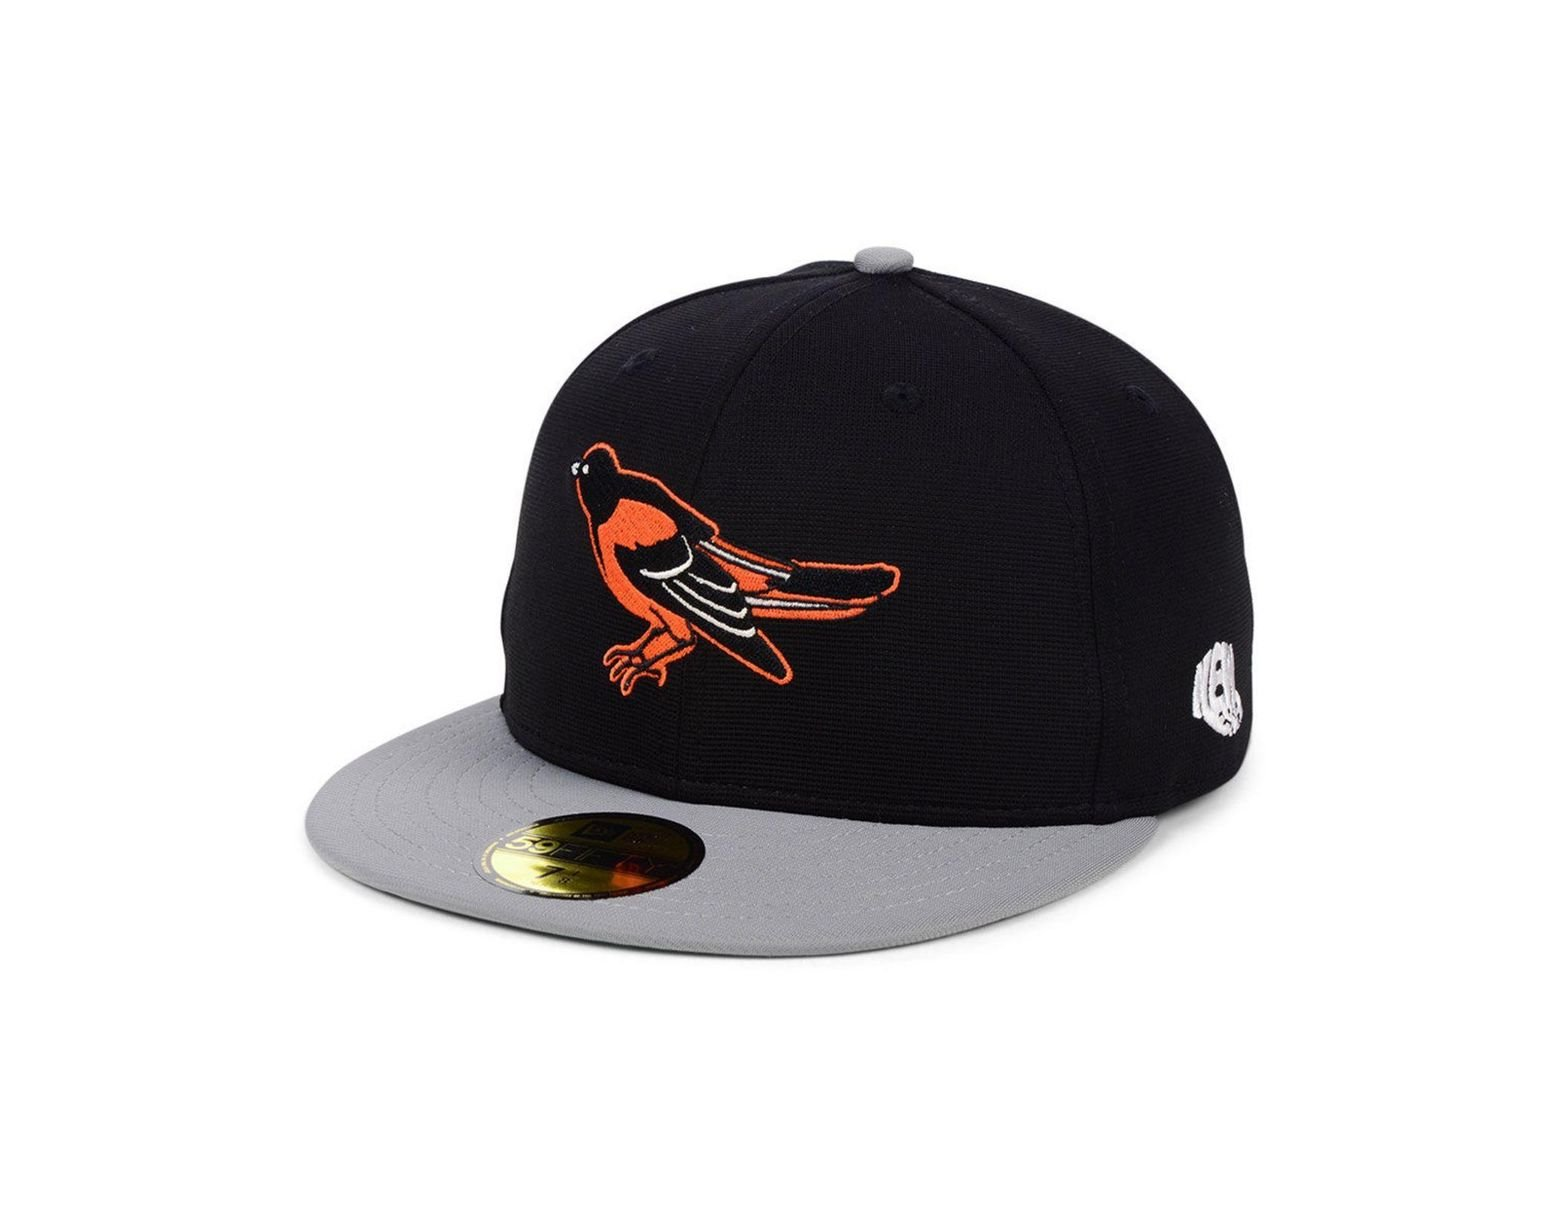 185956b4d KTZ Baltimore Orioles Cooperstown Flip 59fifty Fitted Cap in Black ...